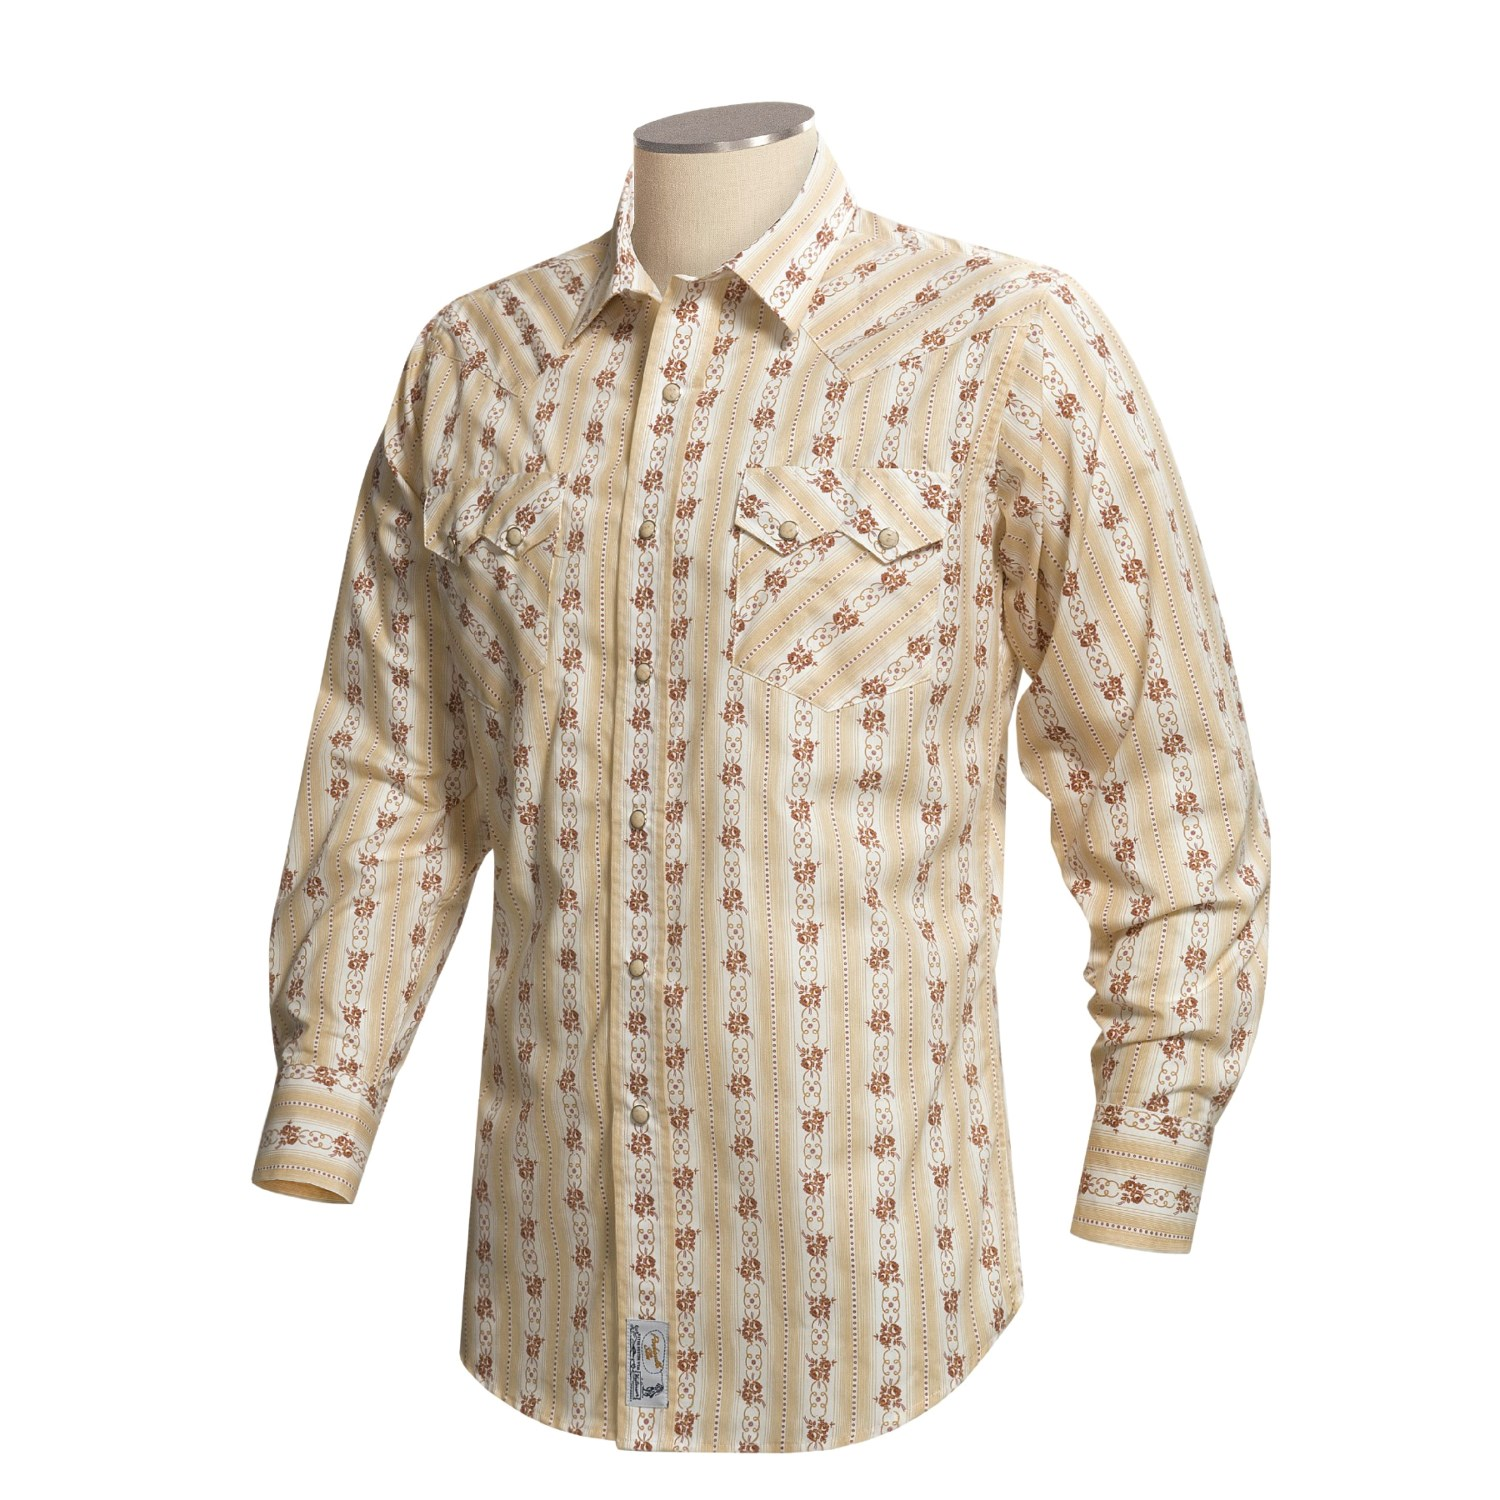 Panhandle Slim Western Shirt With Floral Print For Men